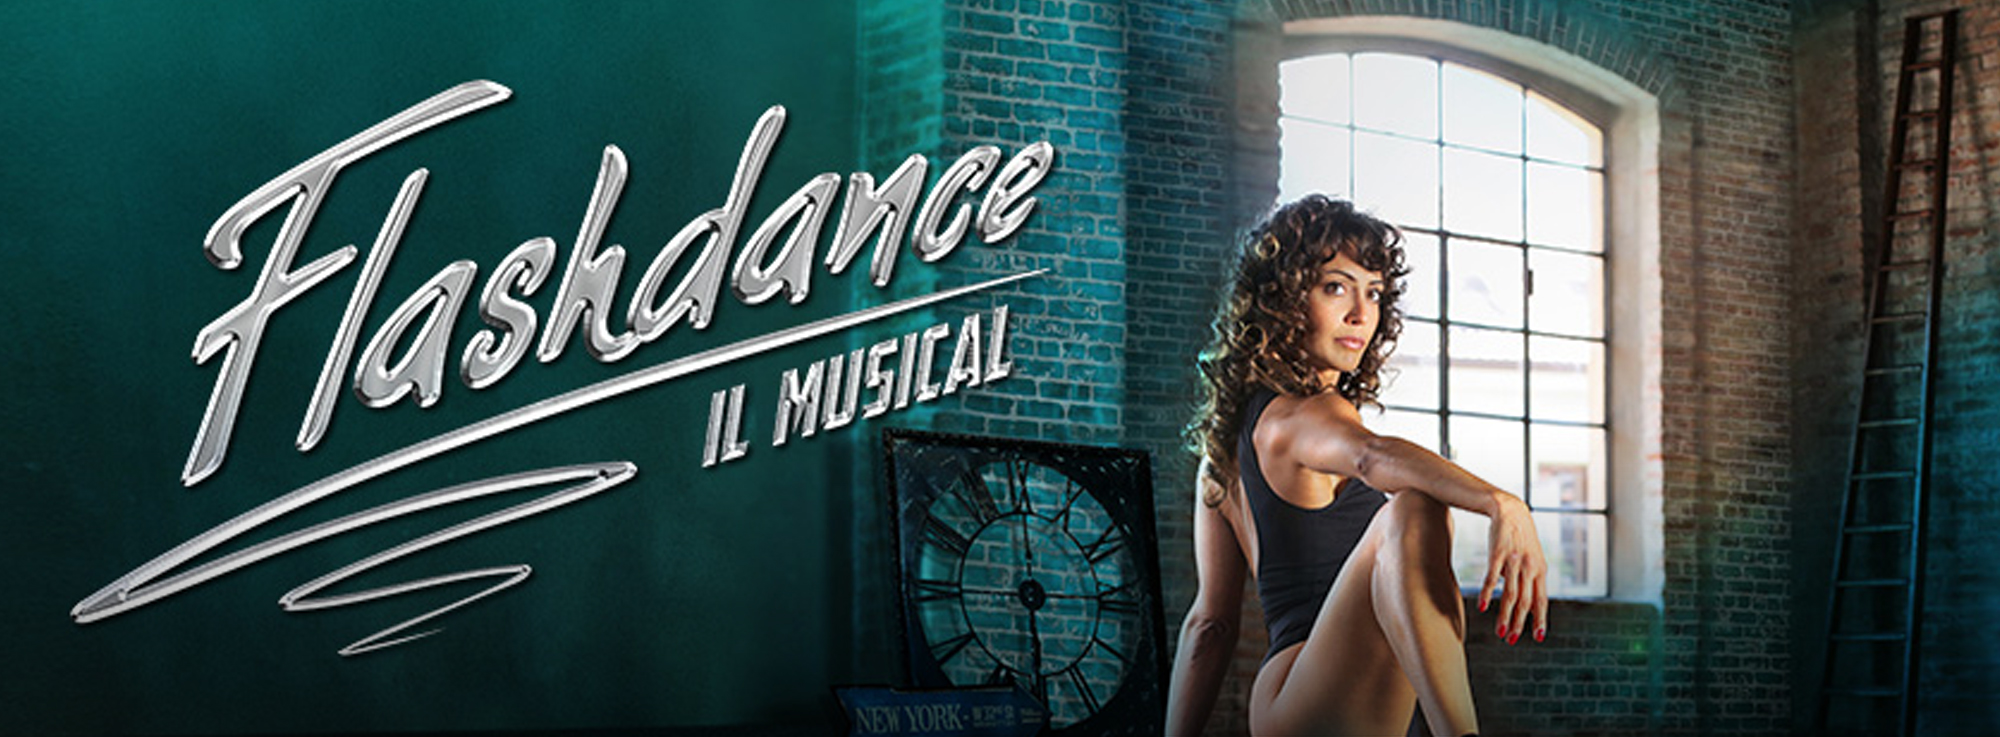 Lecce: Flashdance il Musical